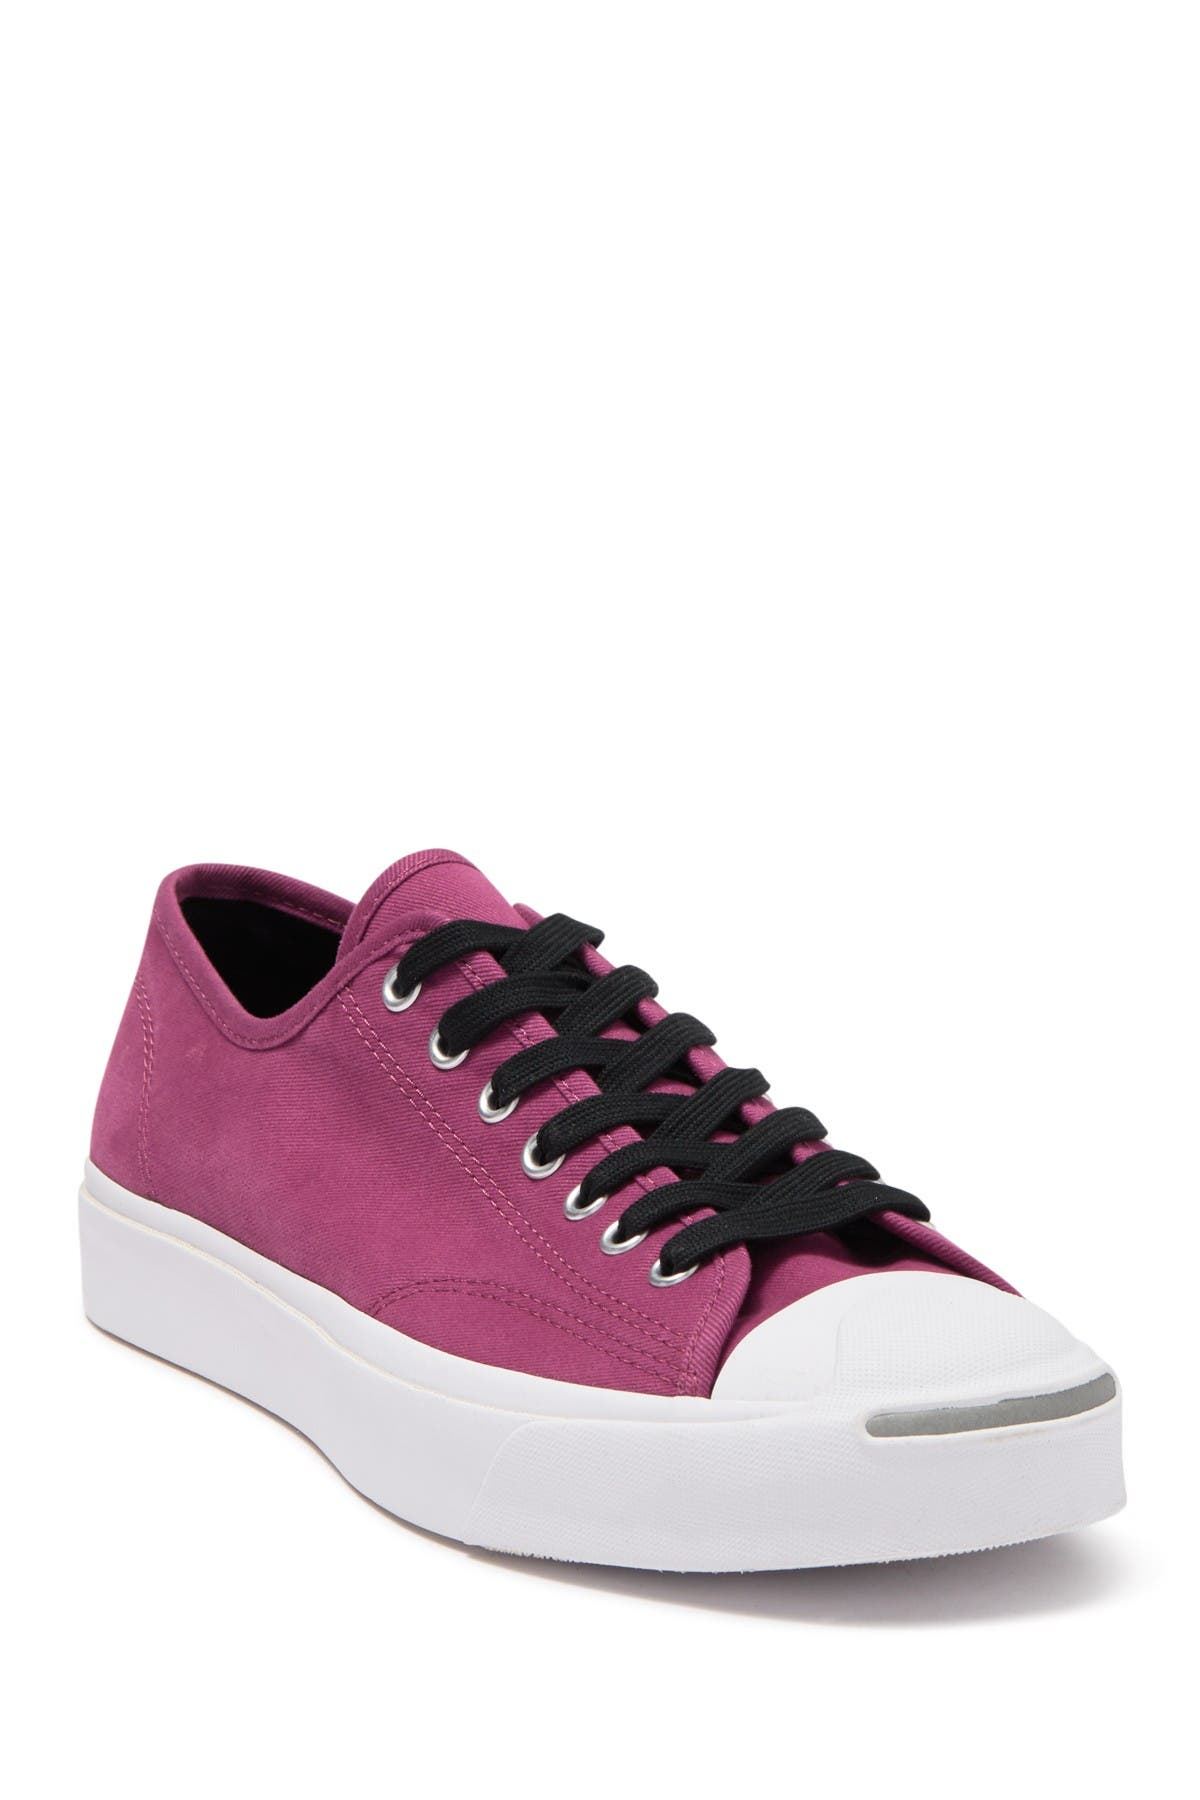 Converse | Jack Purcell Twill Sneaker